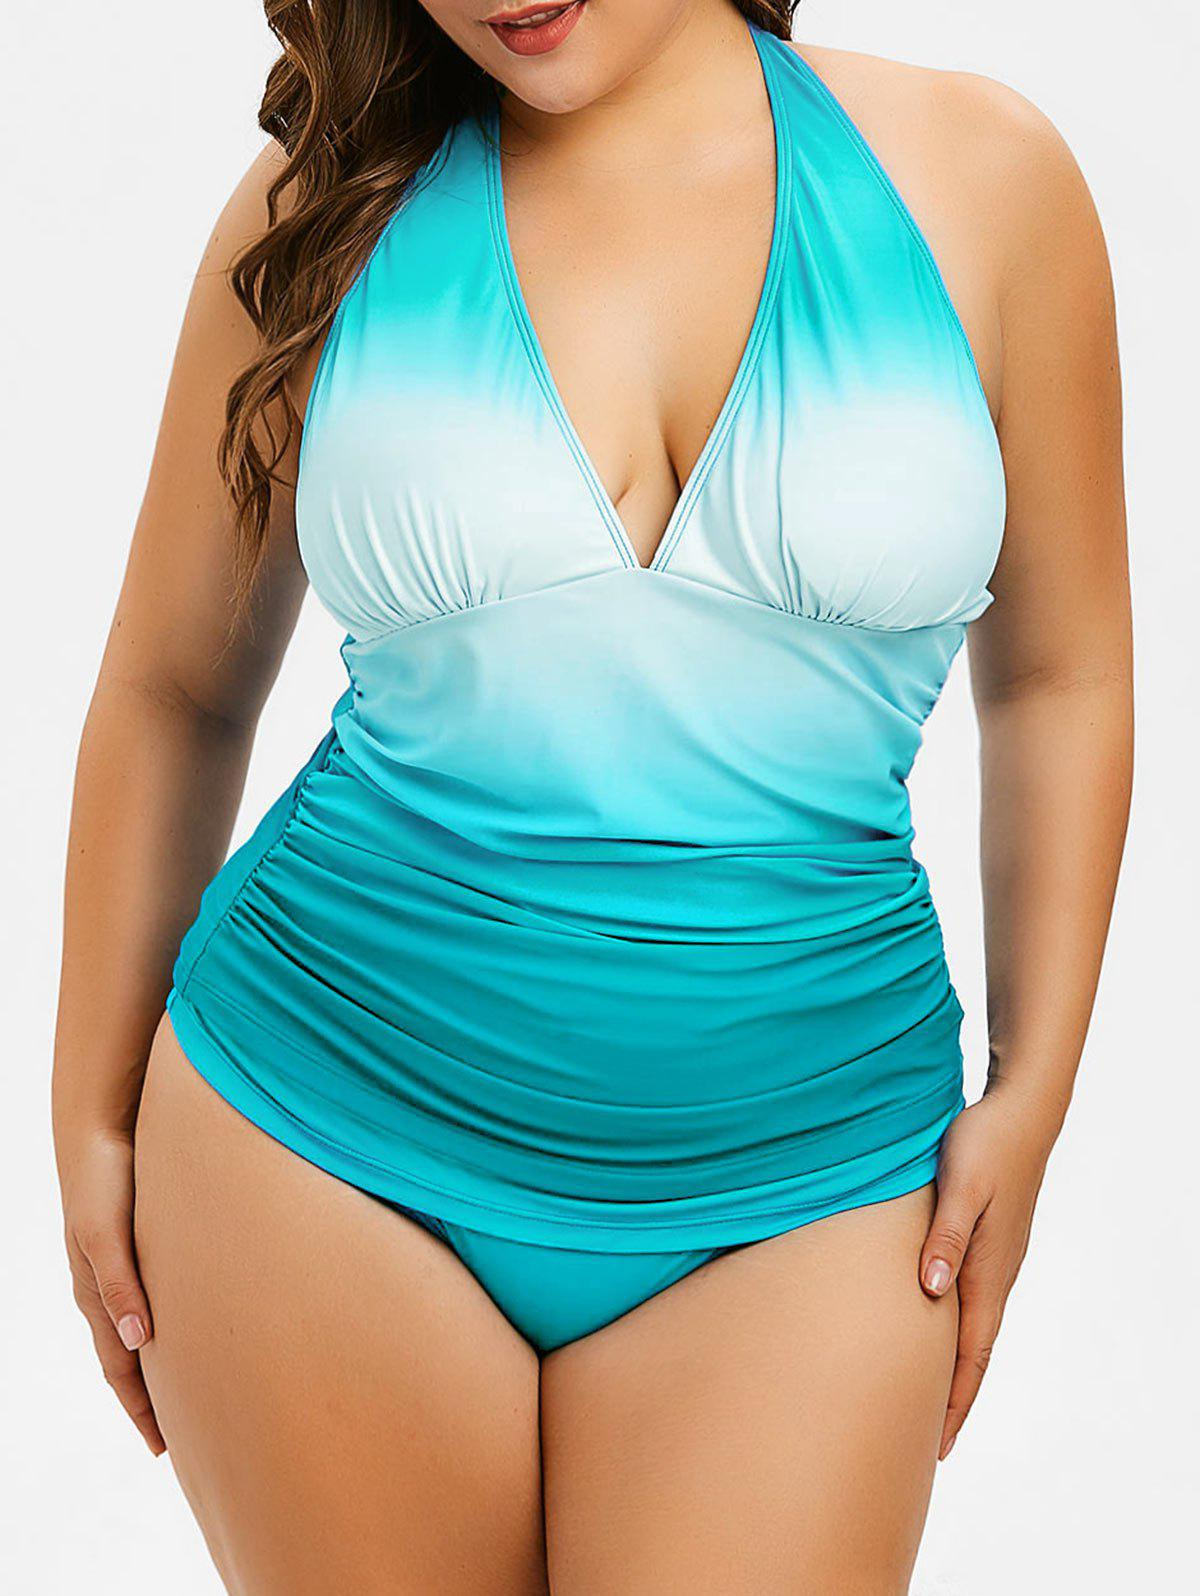 Plus Size Ombre Hater Neck Tankini Set - MACAW BLUE GREEN 4X